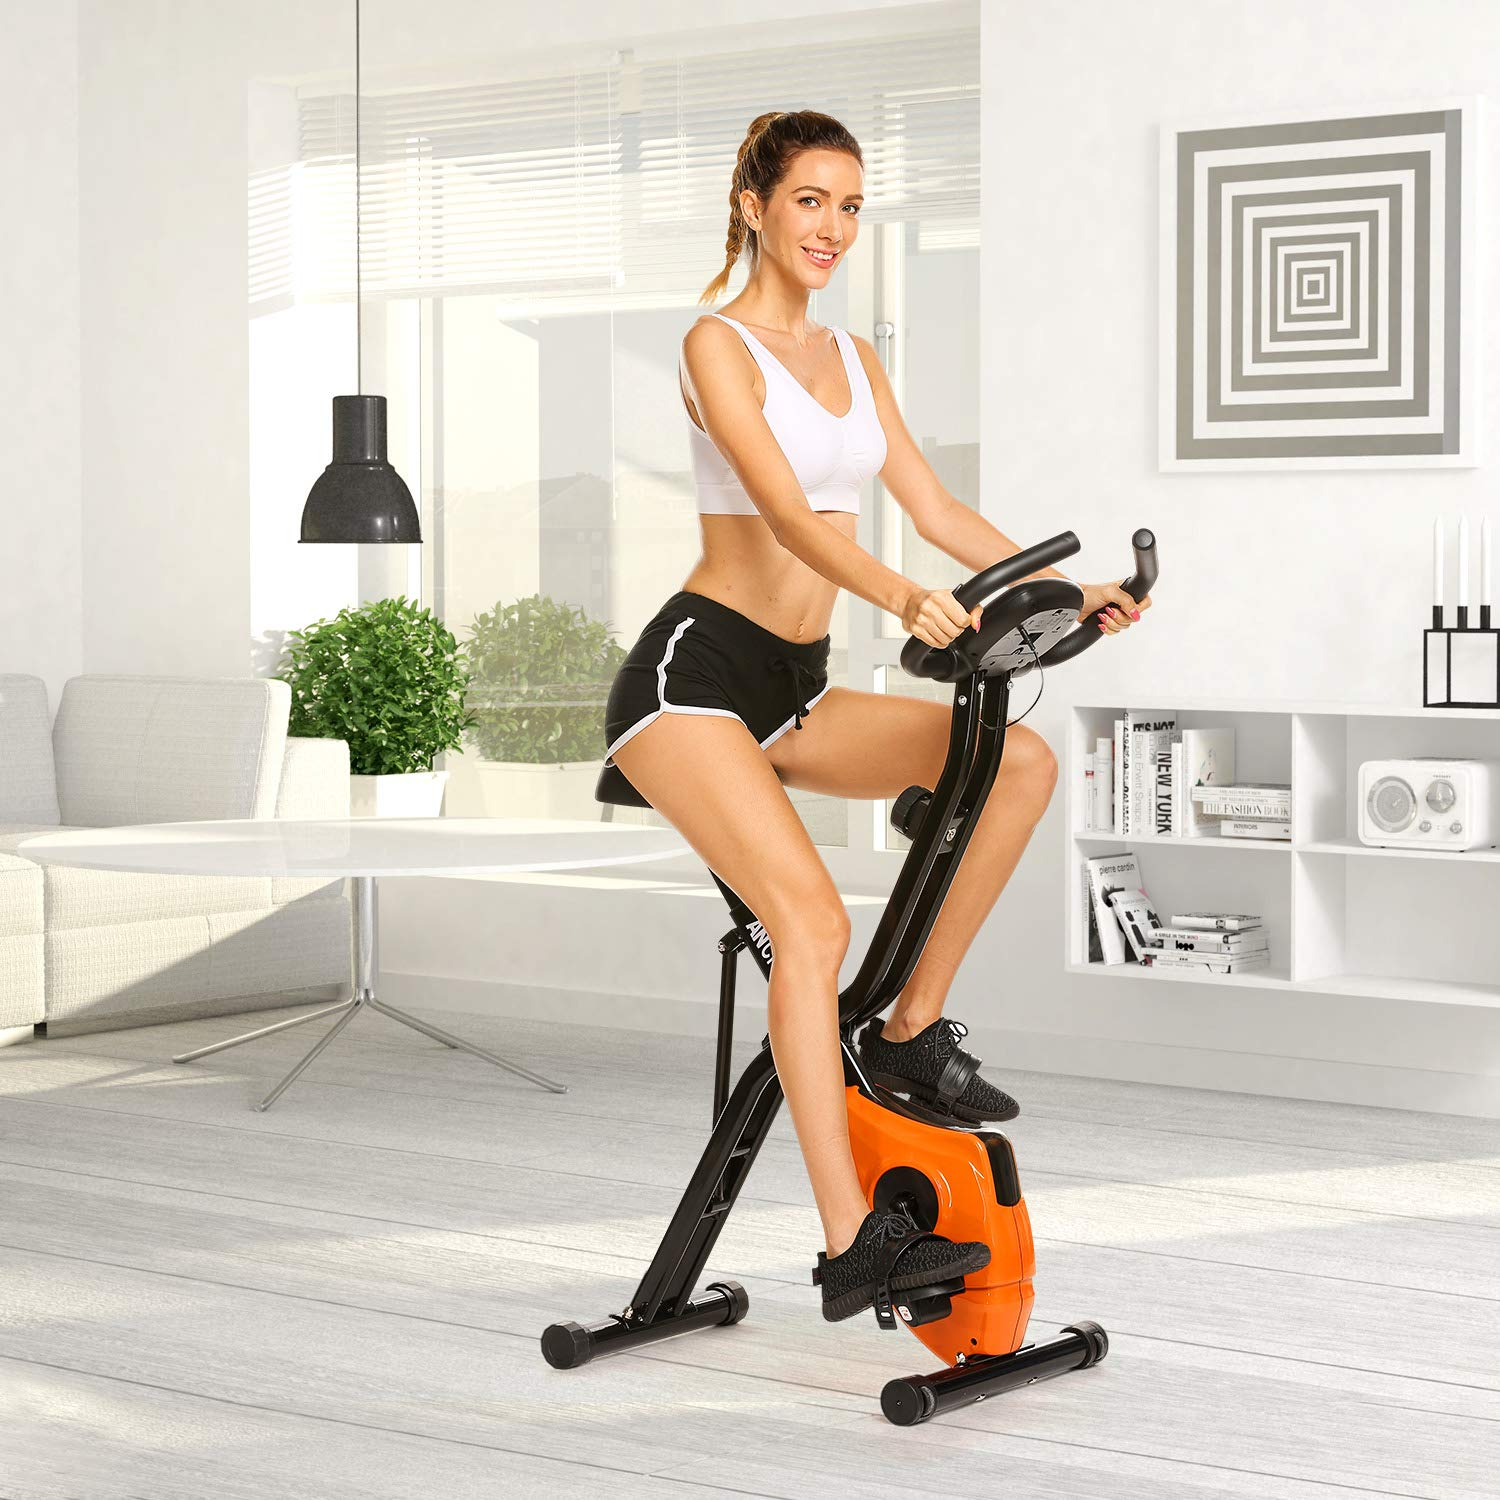 ANCHEER Folding Magnetic Exercise Bike, 10-Level Adjustable Stationary Bike - Tablet Stand & Large and Comfortable Seat by ANCHEER (Image #7)